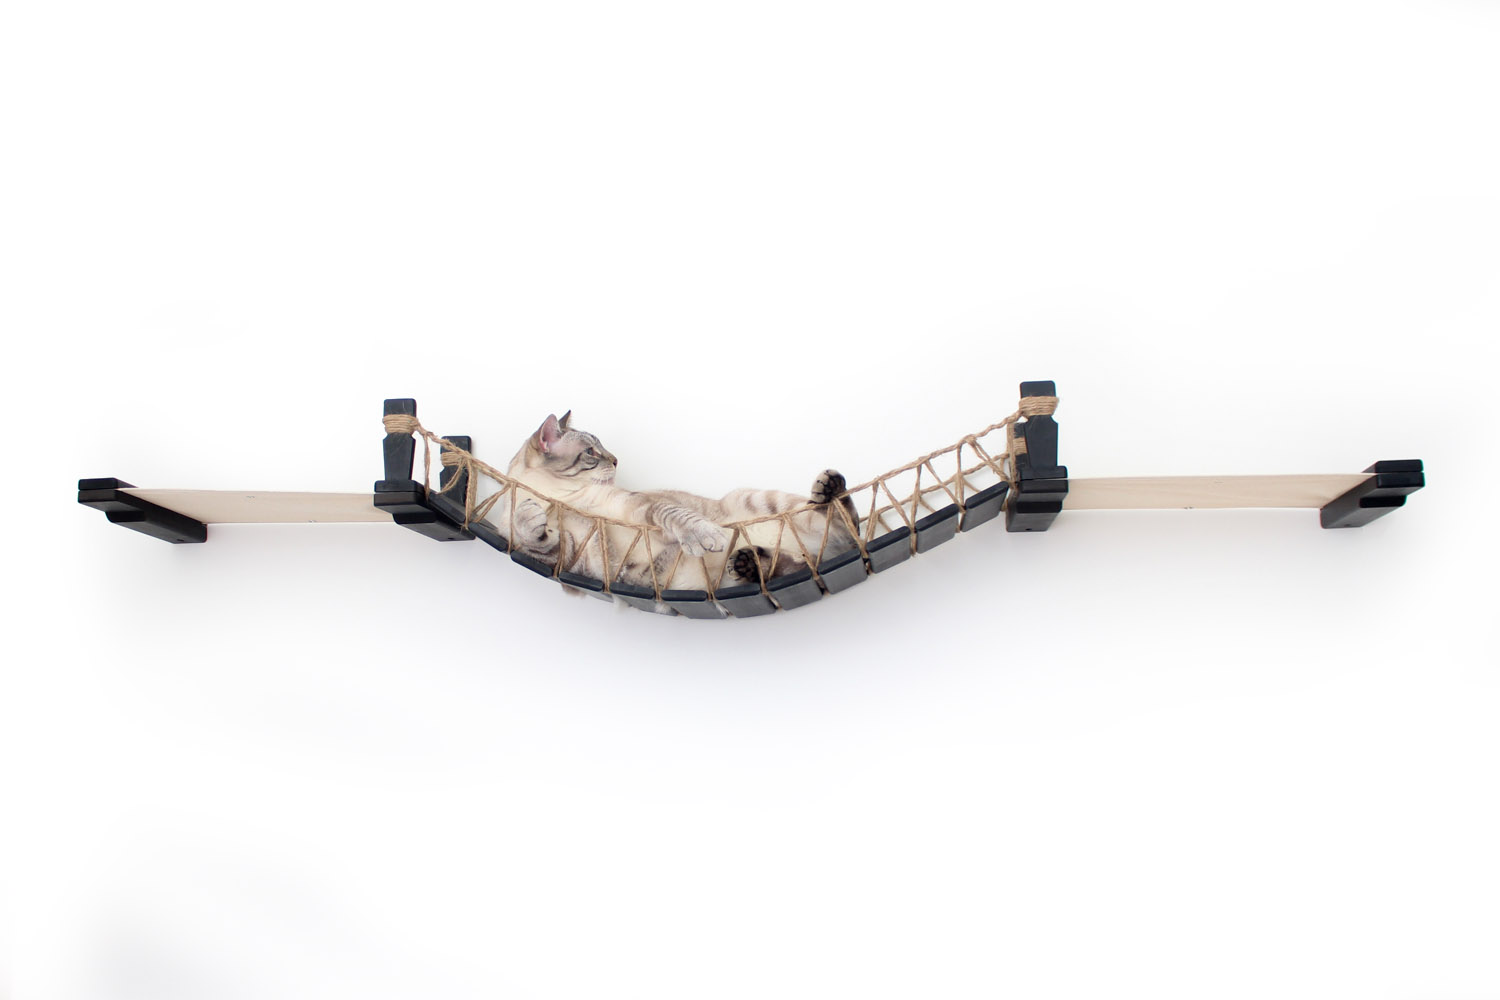 This photo displays our cat relaxing on the Bridge Lounge. This image shows the Bridge Lounge in Onyx, a black stain, and has Natural fabric, a light tan color.